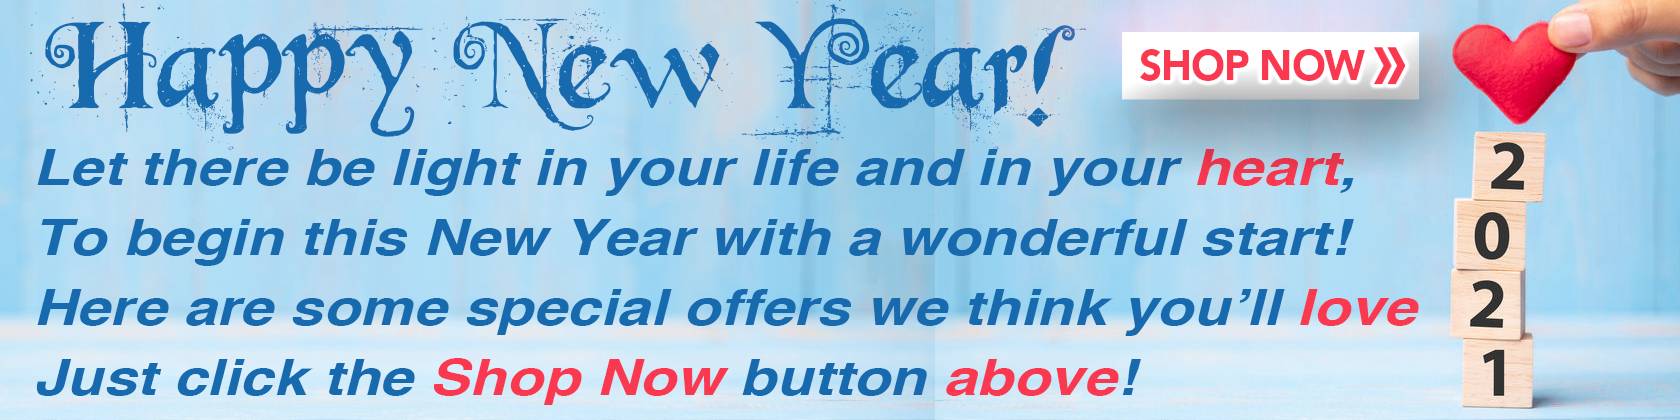 New Year Special Offers Desktop